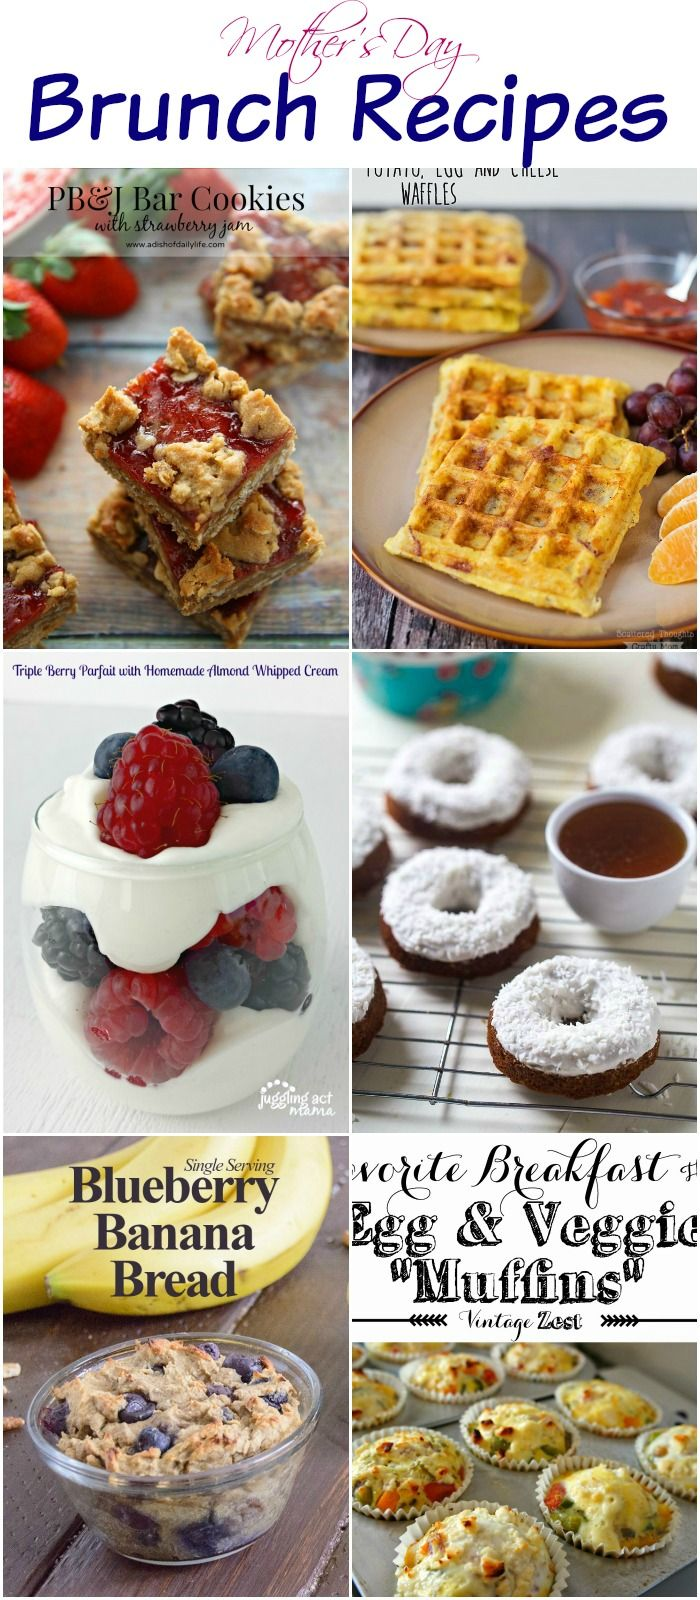 Mother's Day Brunch Recipes collected by The NY Melrose Family